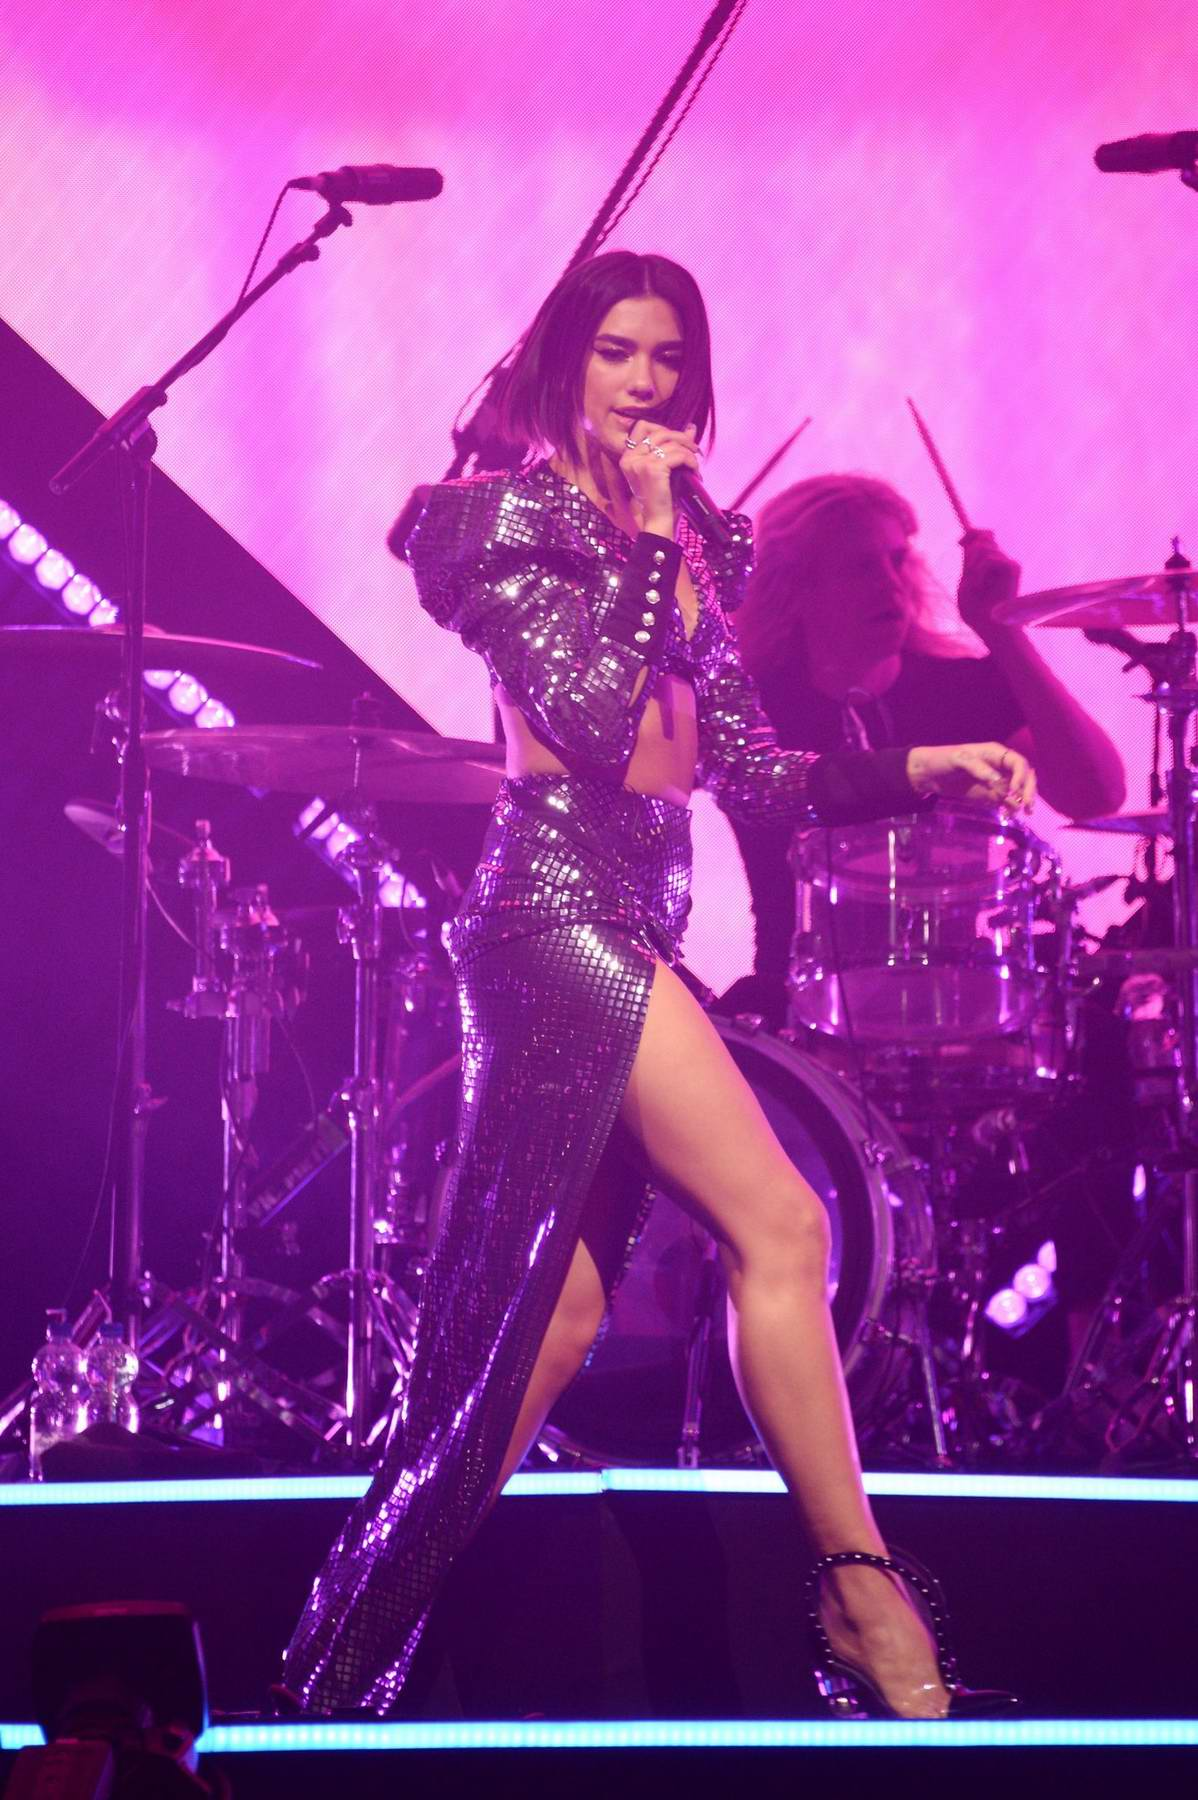 Dua Lipa performs during 'Dua Lipa x Jaguar' launch event hosted by Jaguar in Amsterdam, Netherlands